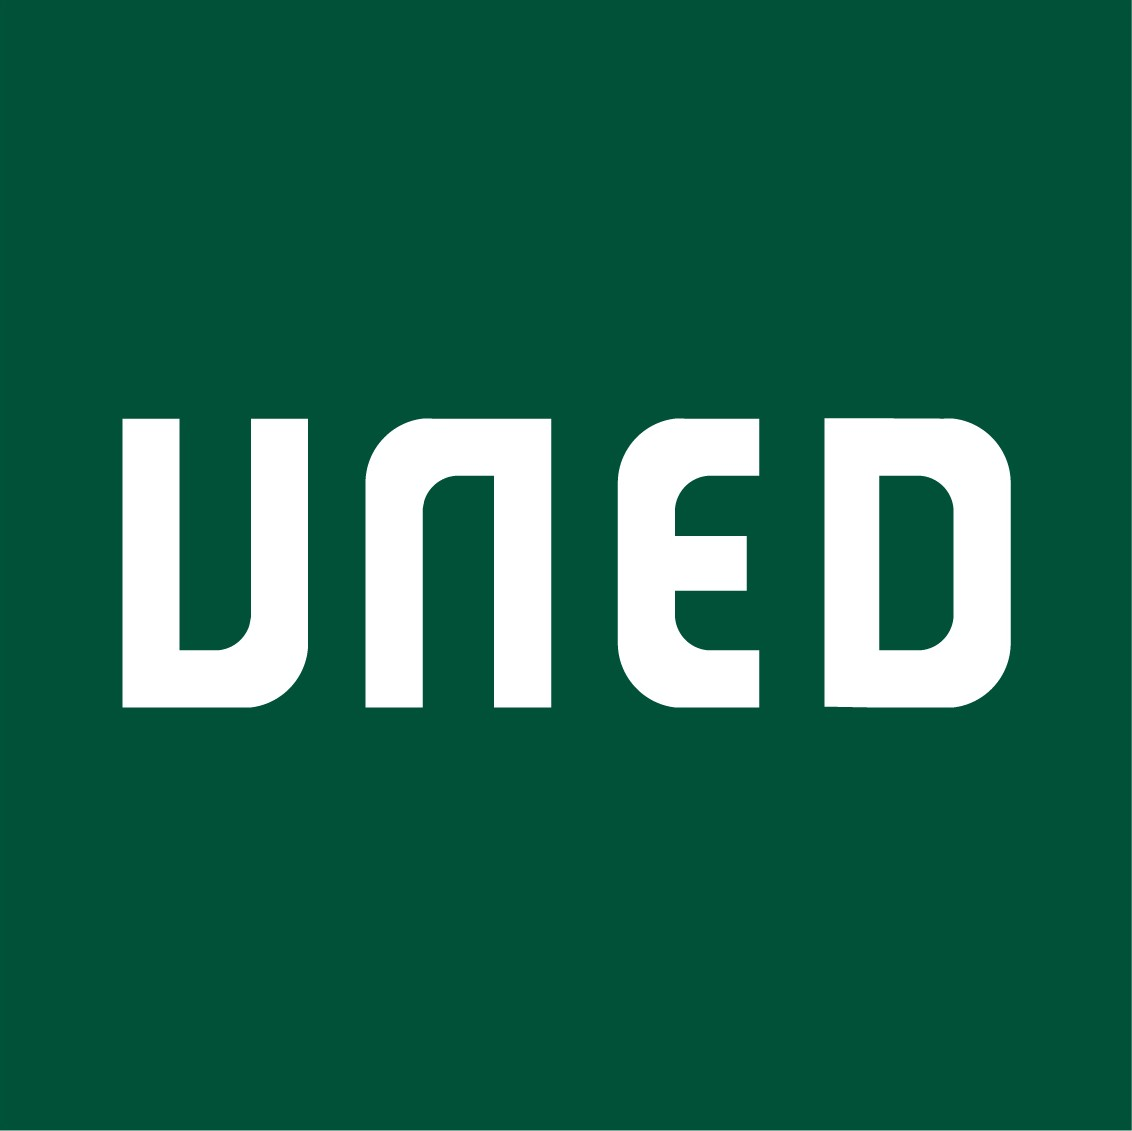 UNED_Logo_National_University_of_Distance_Education